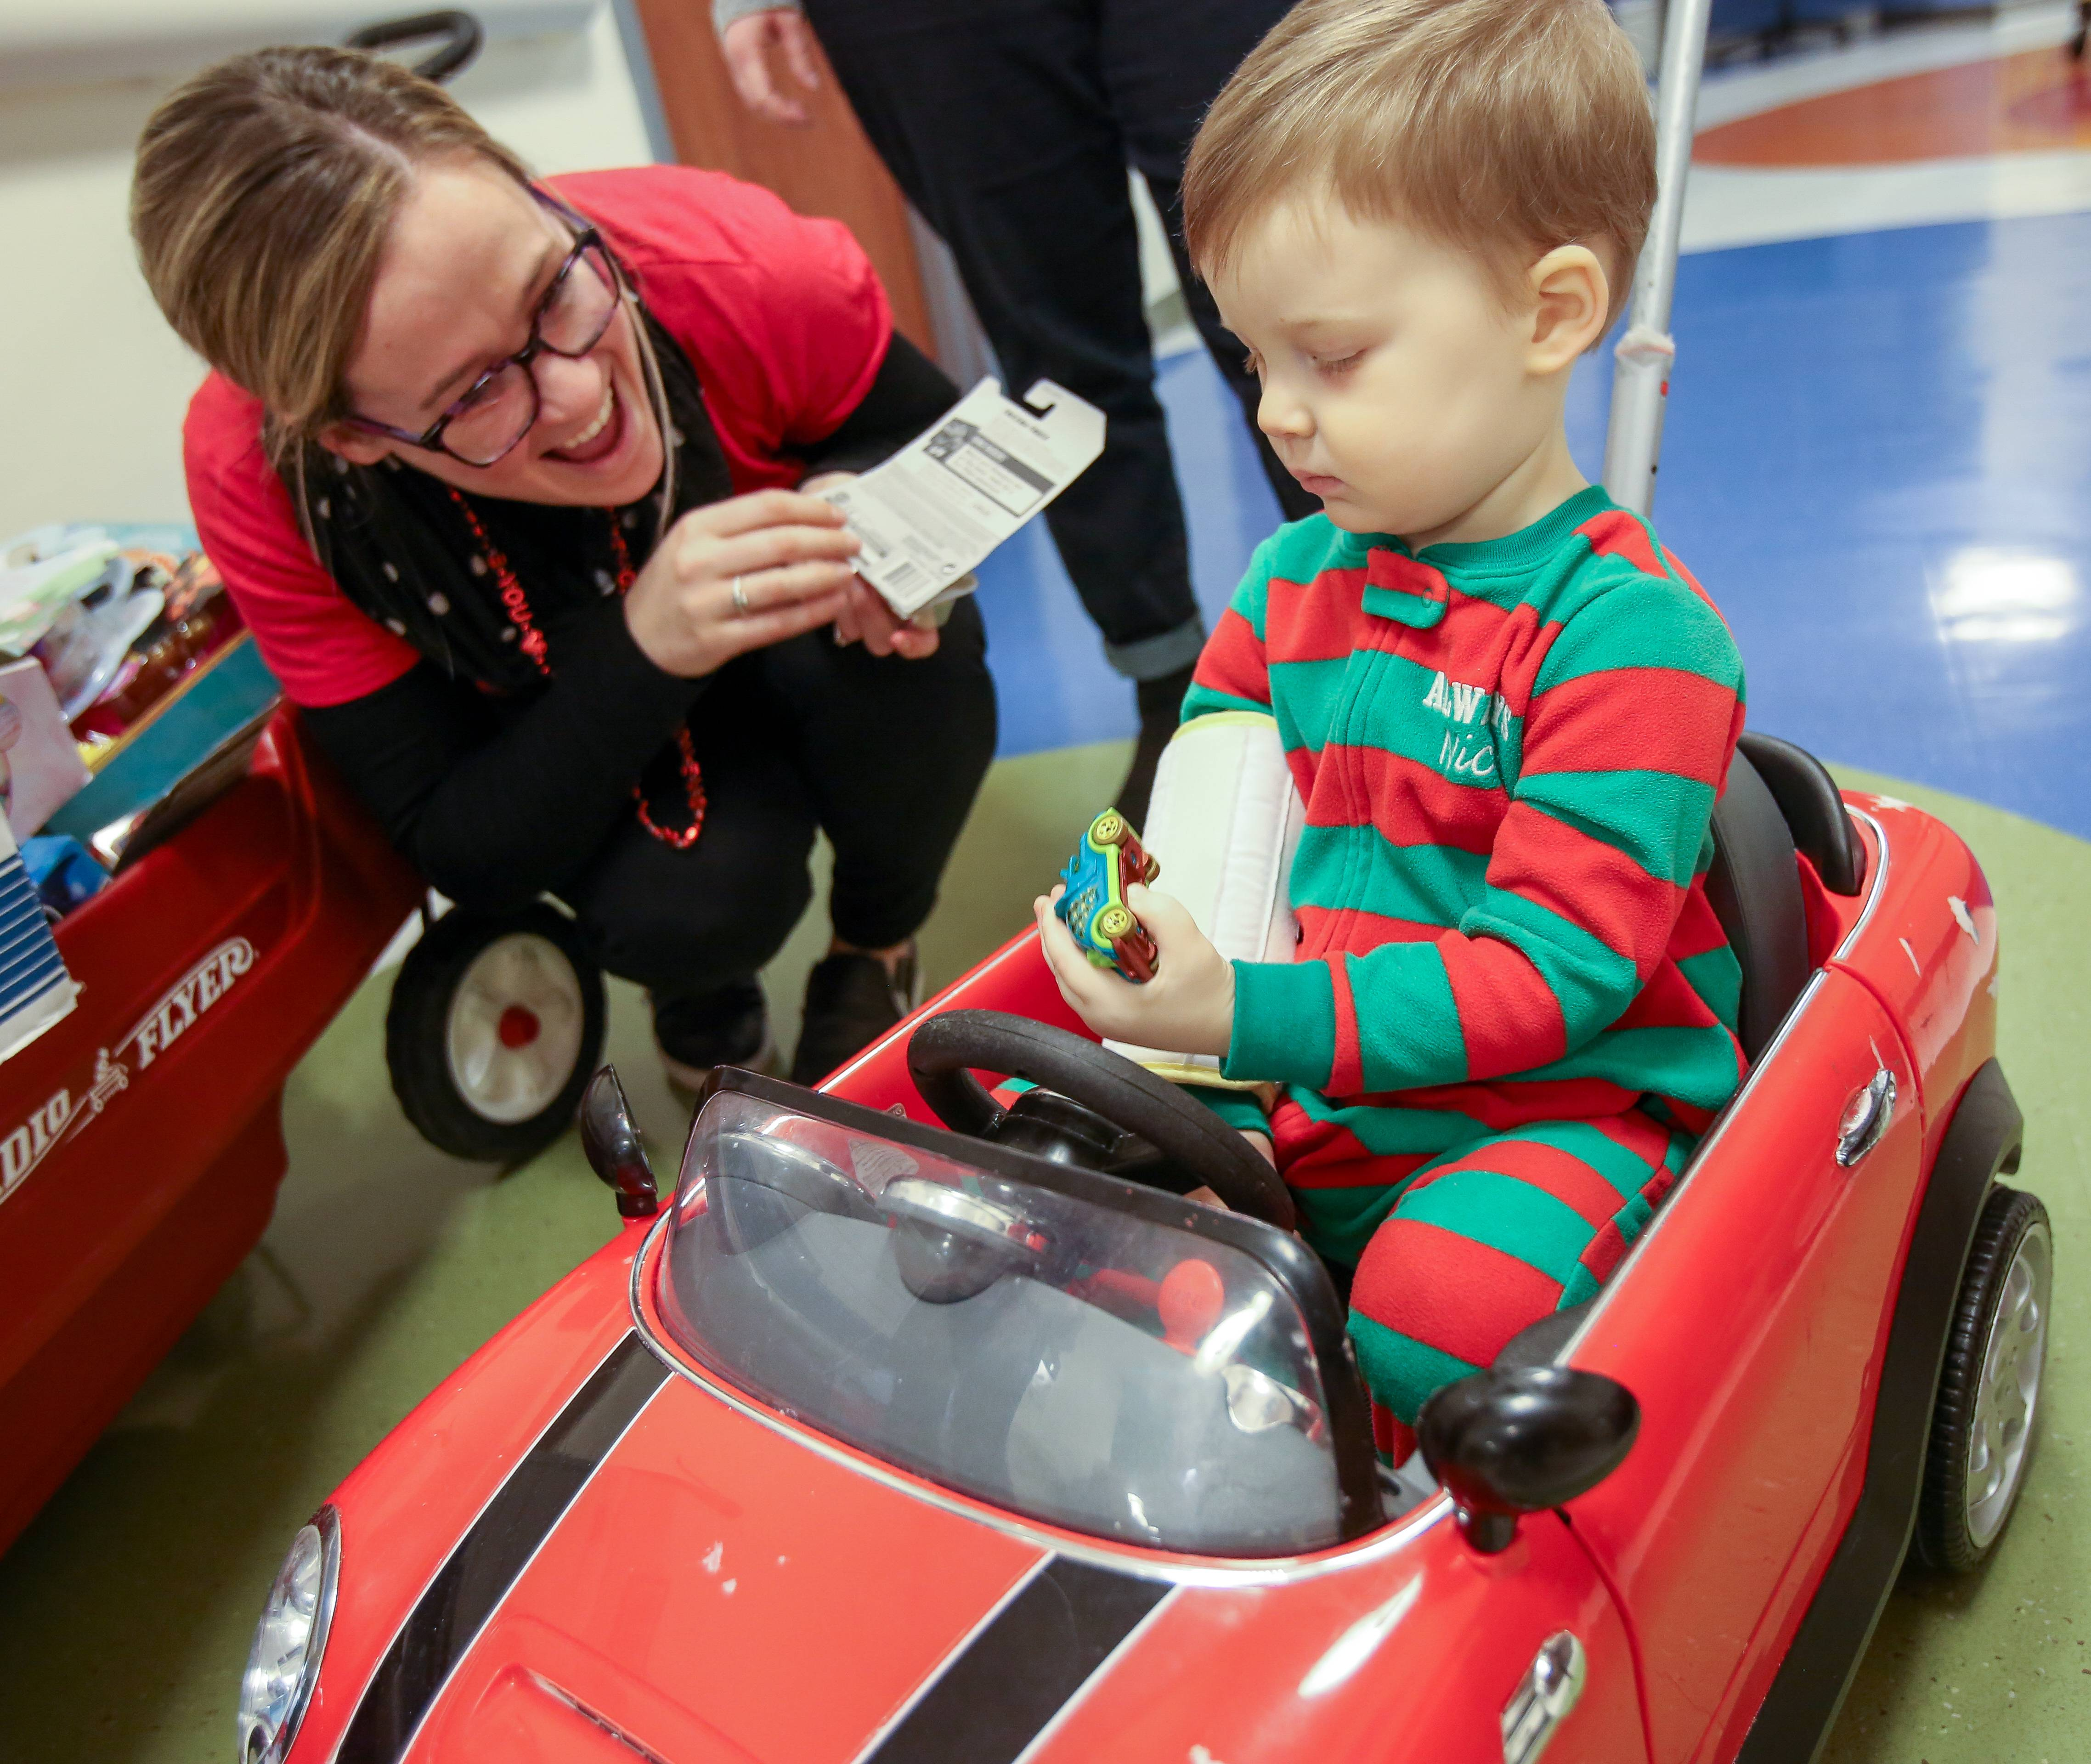 Maggie Drain, development and program coordinator for Holiday Heroes, gives some toy cars to Logan Klemencic, 23 months, of Sugar Grove for Valentine's Day on Thursday at Northwestern Medicine Central DuPage Hospital in Winfield.